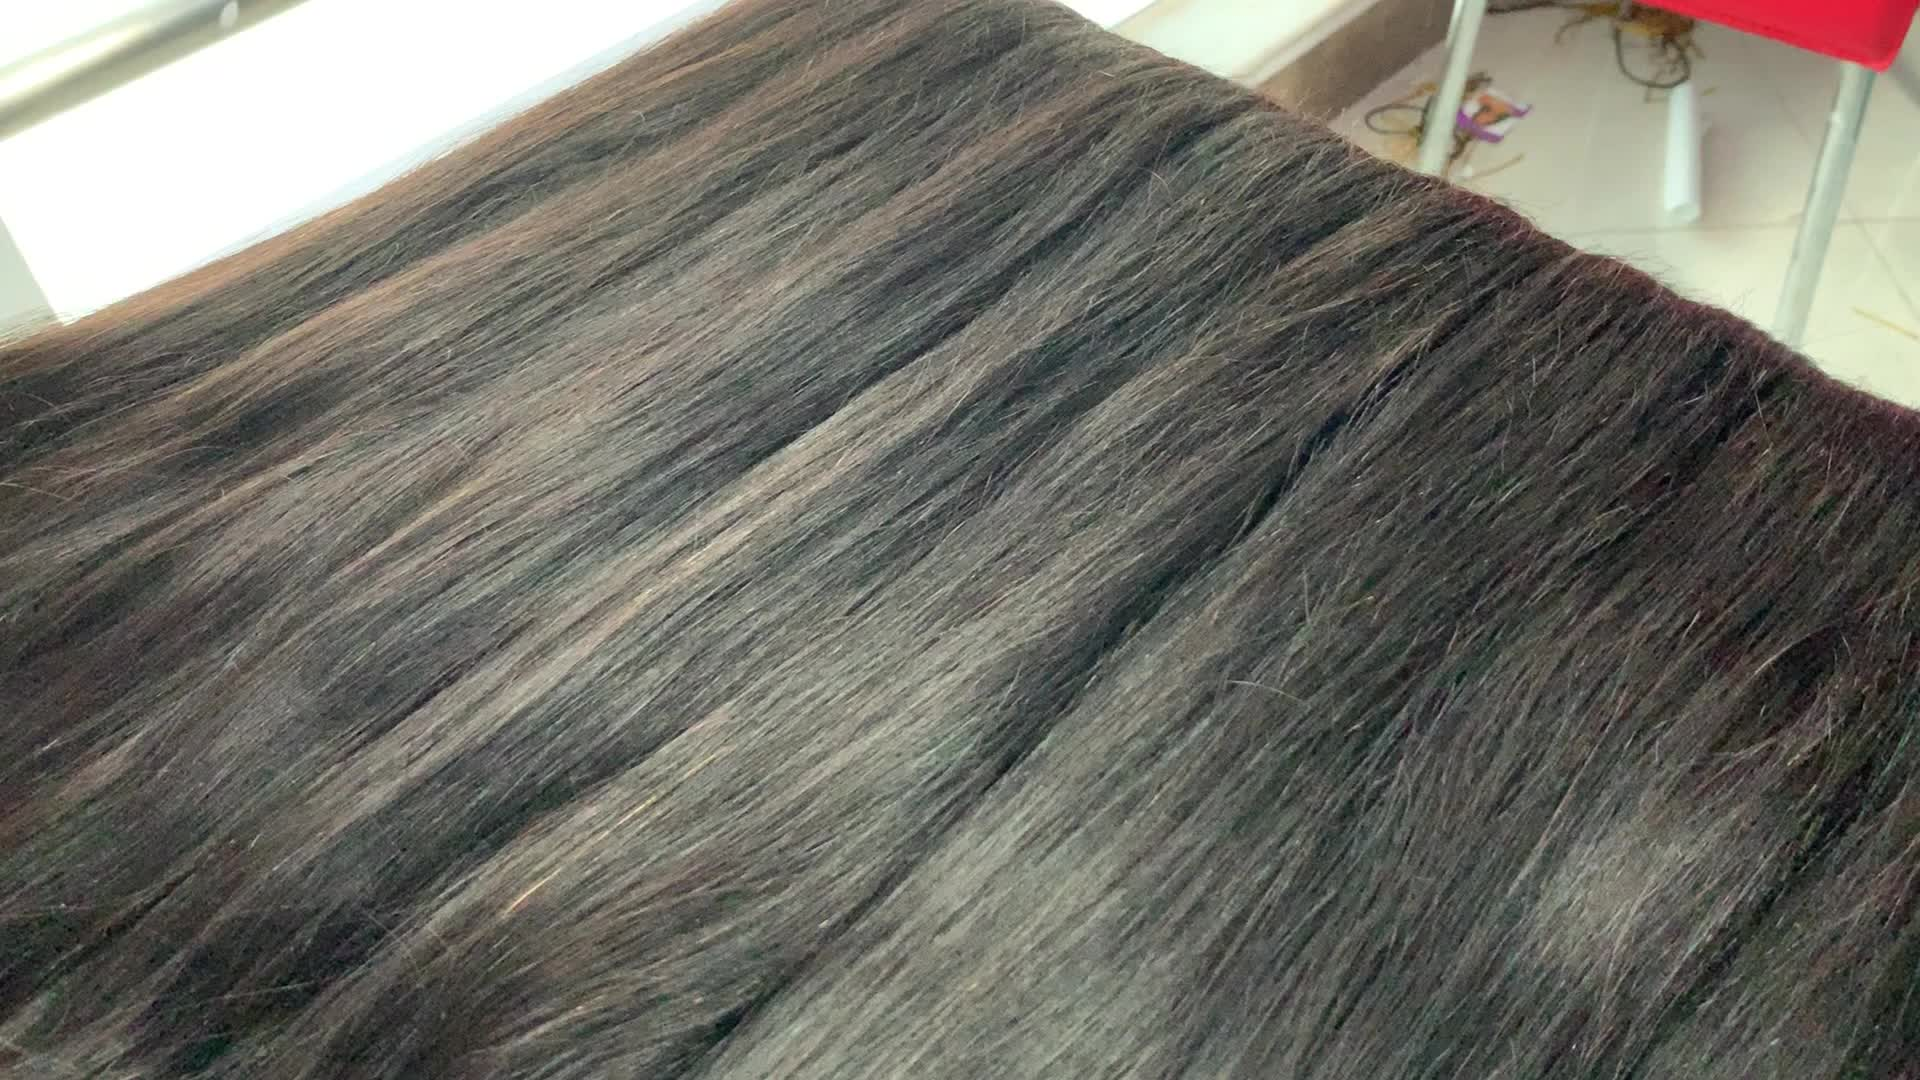 Free Sample Hair Bundle Raw Virgin Cuticle Aligned Hair,Human Hair Weave Bundle,Wholesale 10A Mink Virgin Brazilian Hair Vendor